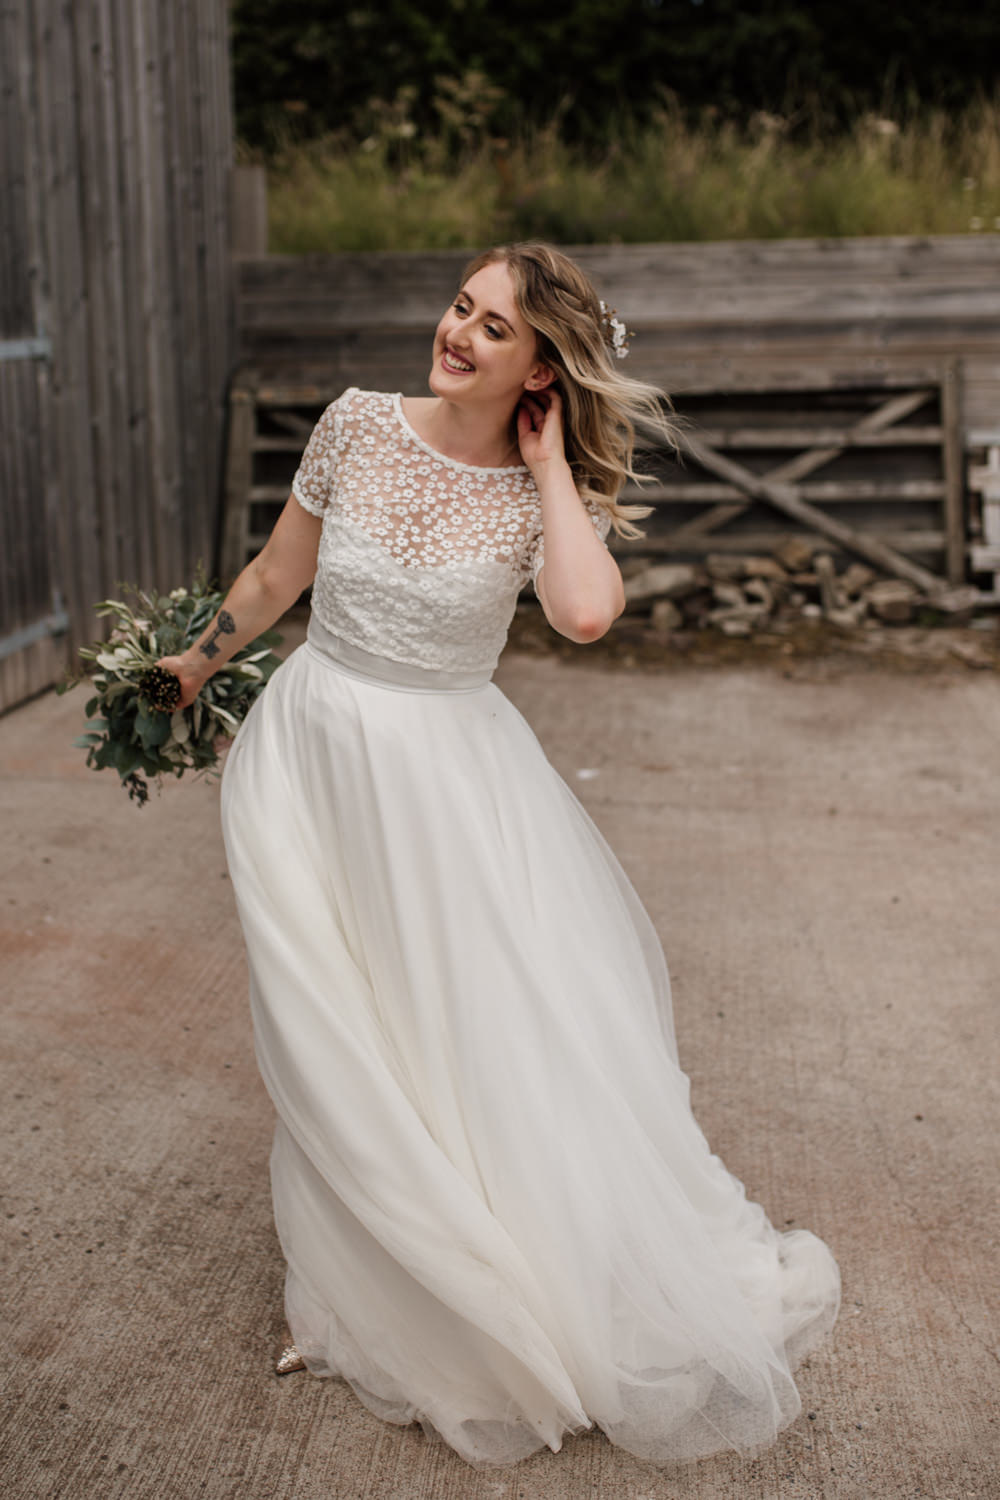 Bride Bridal Separates V Back Lace Top Tulle Skirt Barn Brynich Wedding Magda K Photography